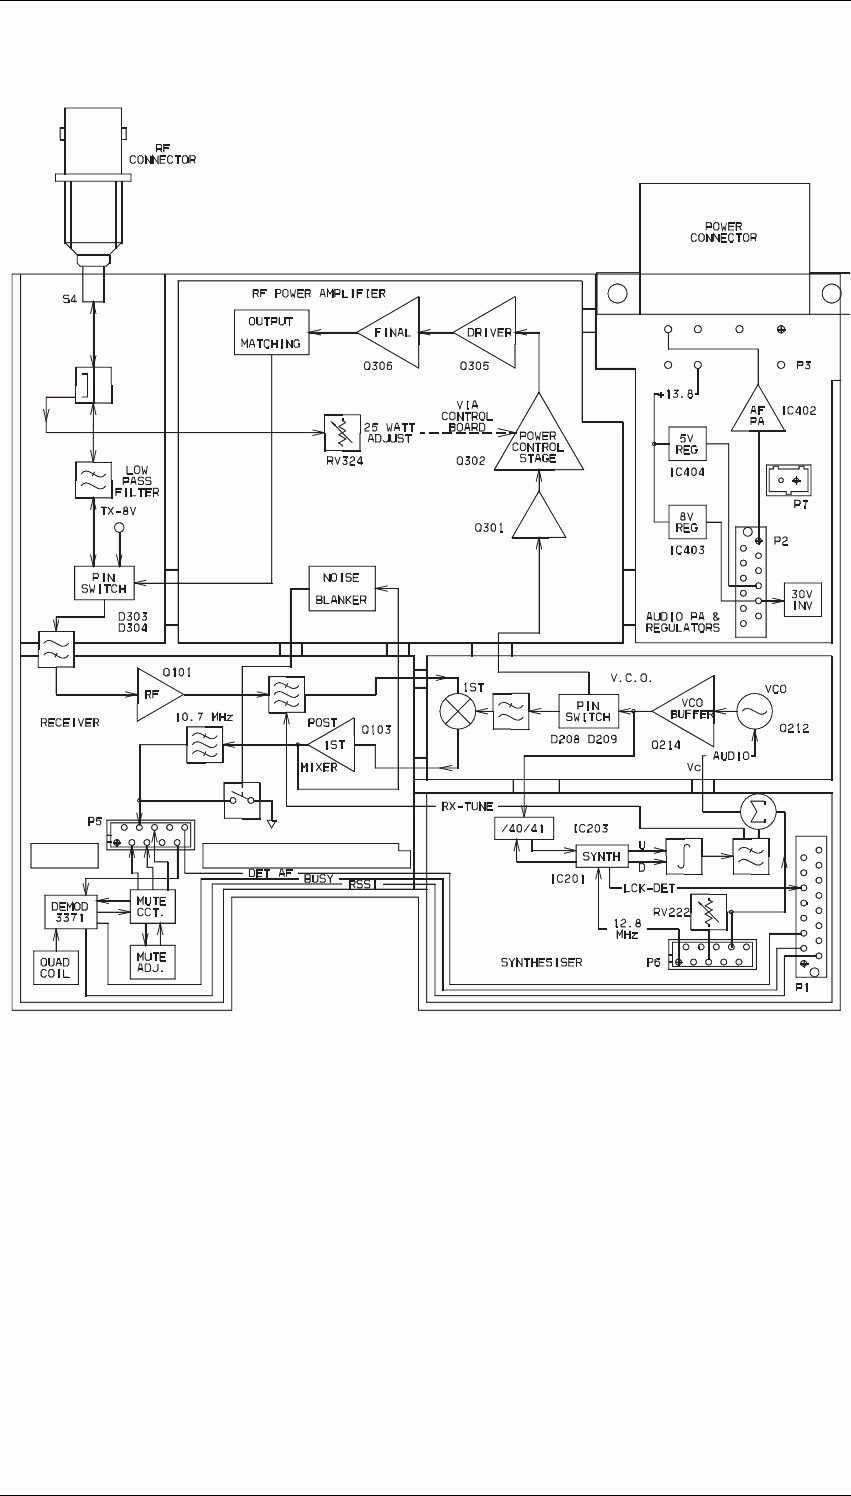 1 Stat 900 Wiring Diagram Detailed Schematics Vsm Turn Signal 700 Page 2 And Peterbilt